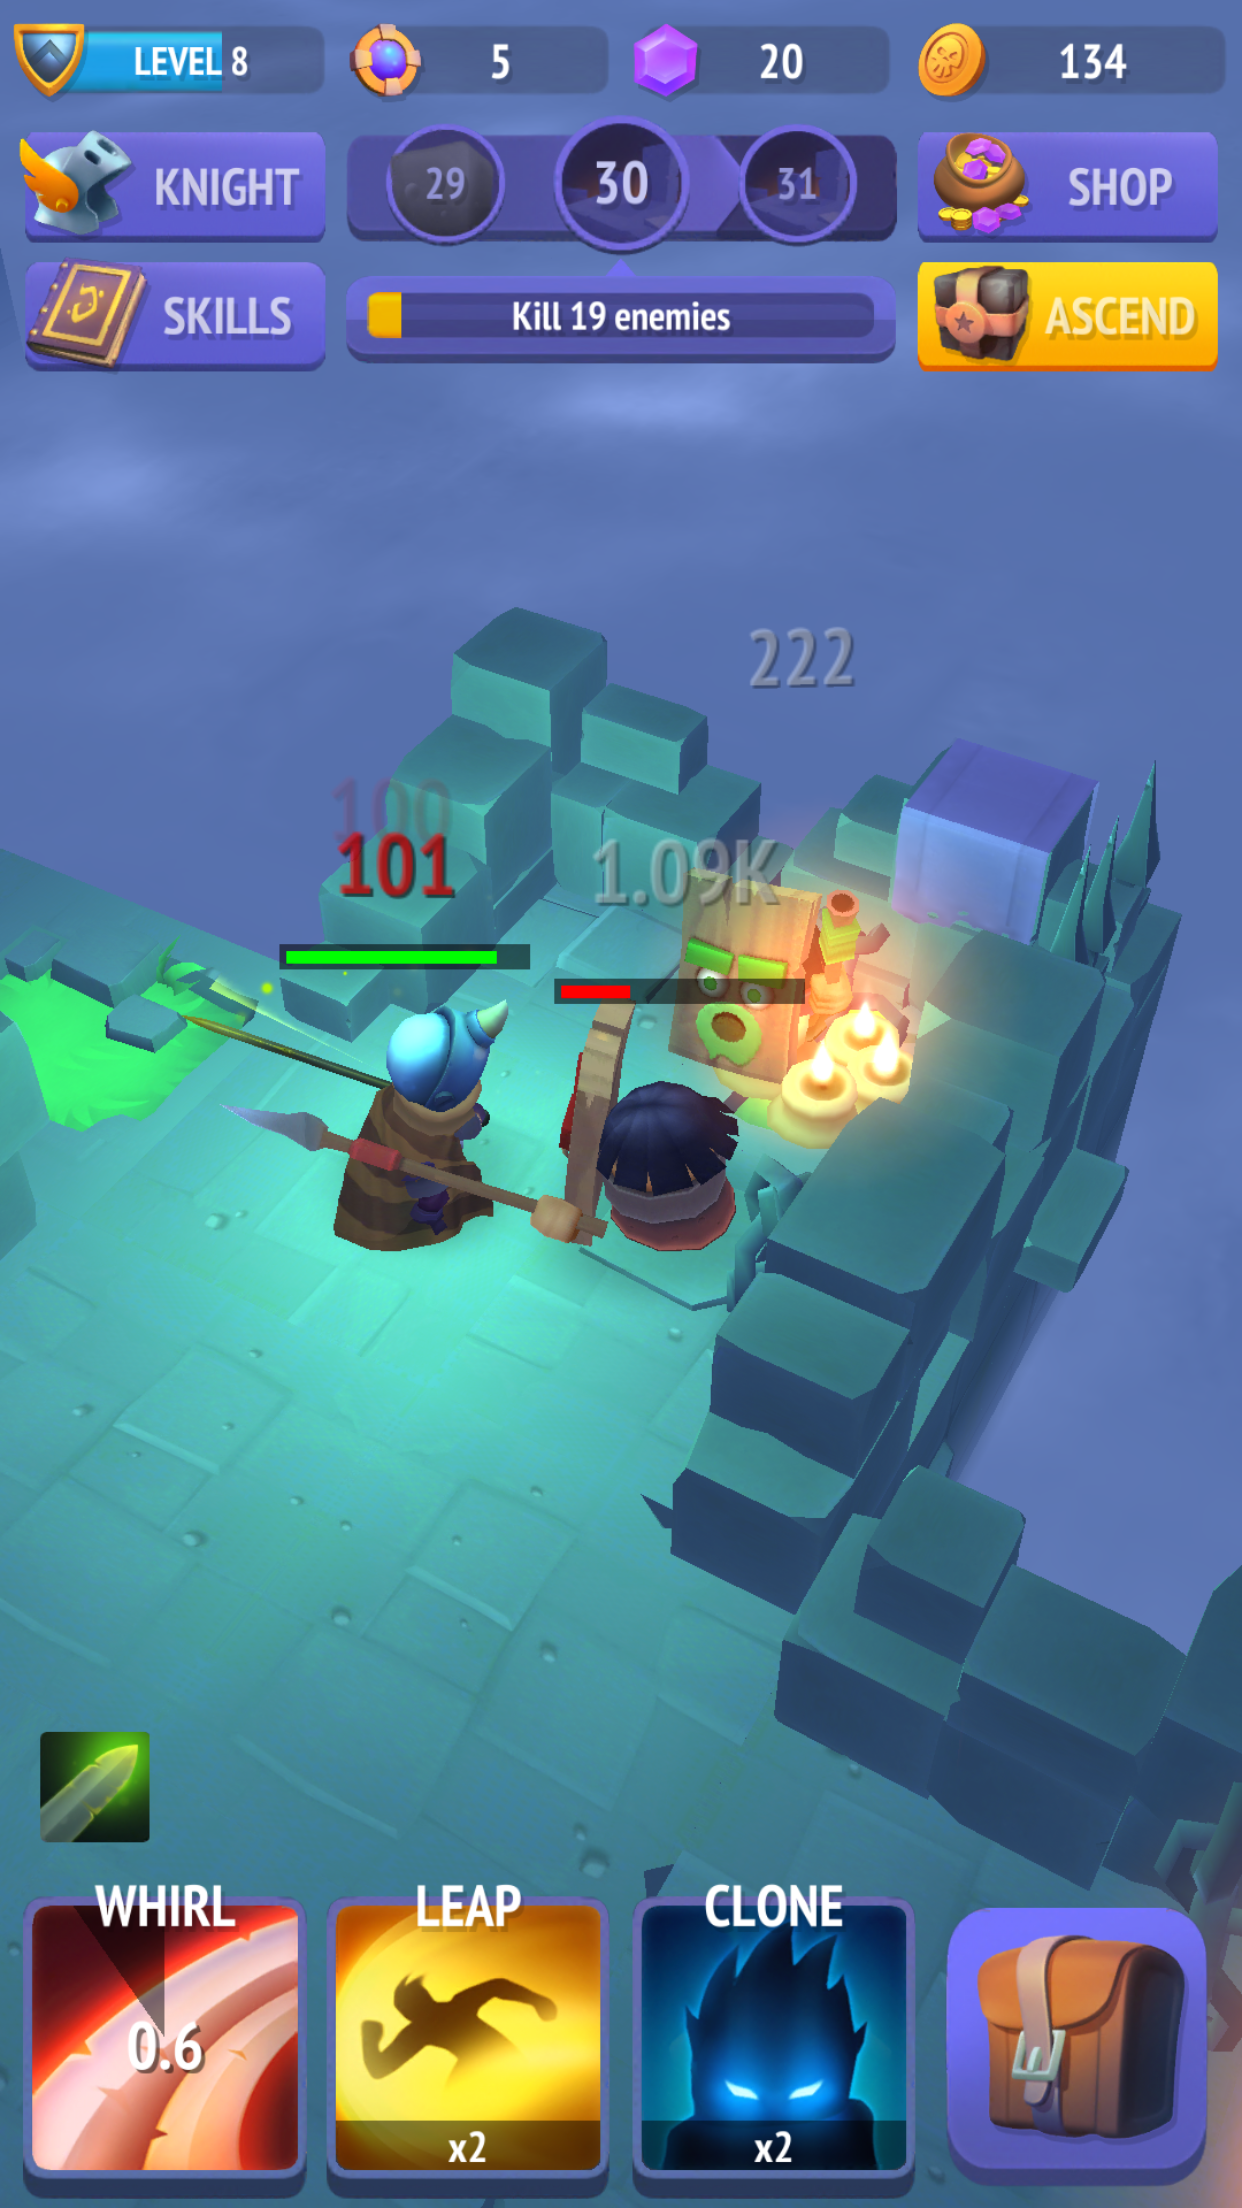 How does Nonstop Knight compare to Dungeon Hunter 5, Loot and Legends, and more?